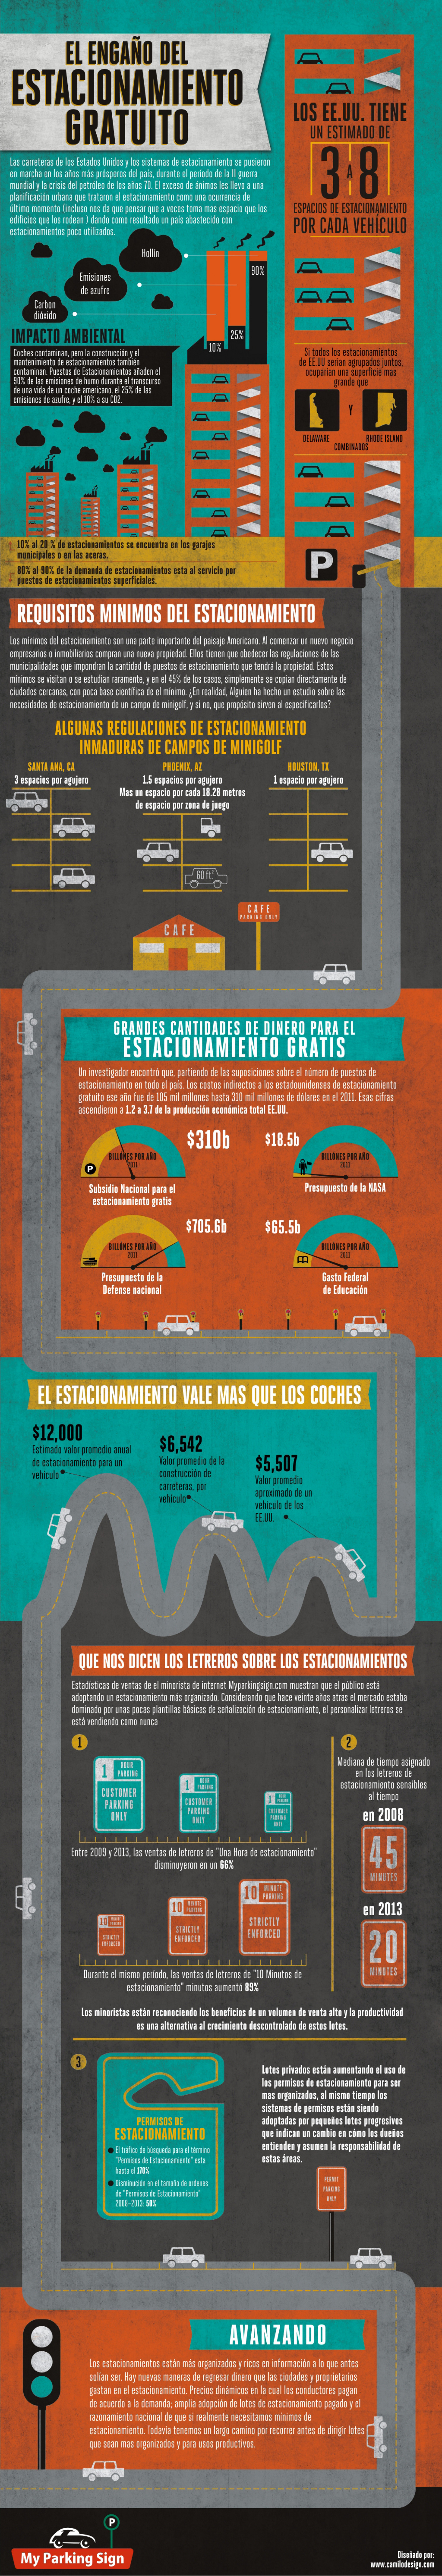 El engaño del estacionamiento gratuito - Free Parking Fallacies Infographic